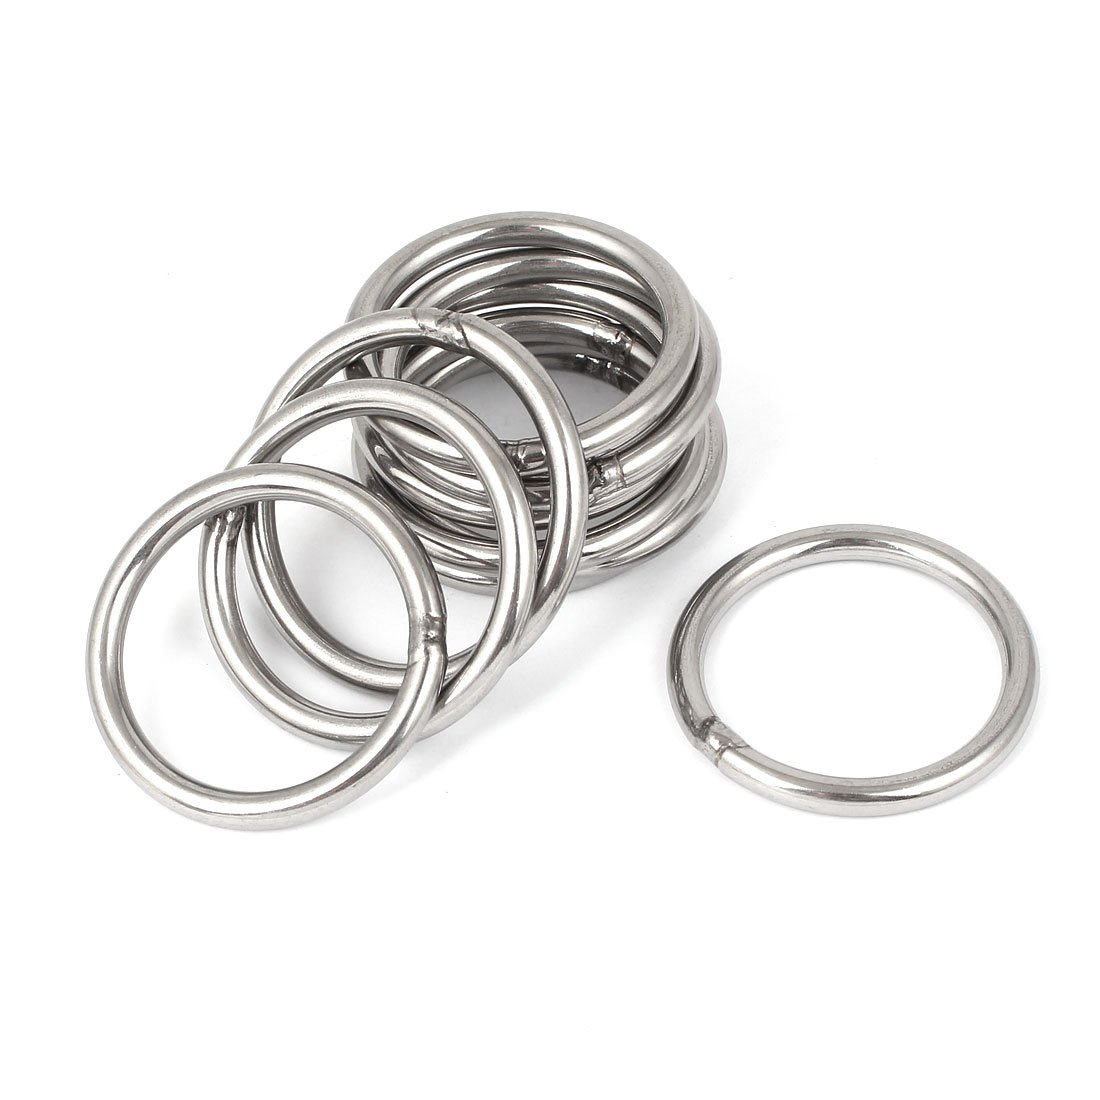 Uxcell a16022600ux0048 M5 x 50mm 201 Stainless Steel Strapping Welded Round O Rings 10 Pcs (Pack of 10)